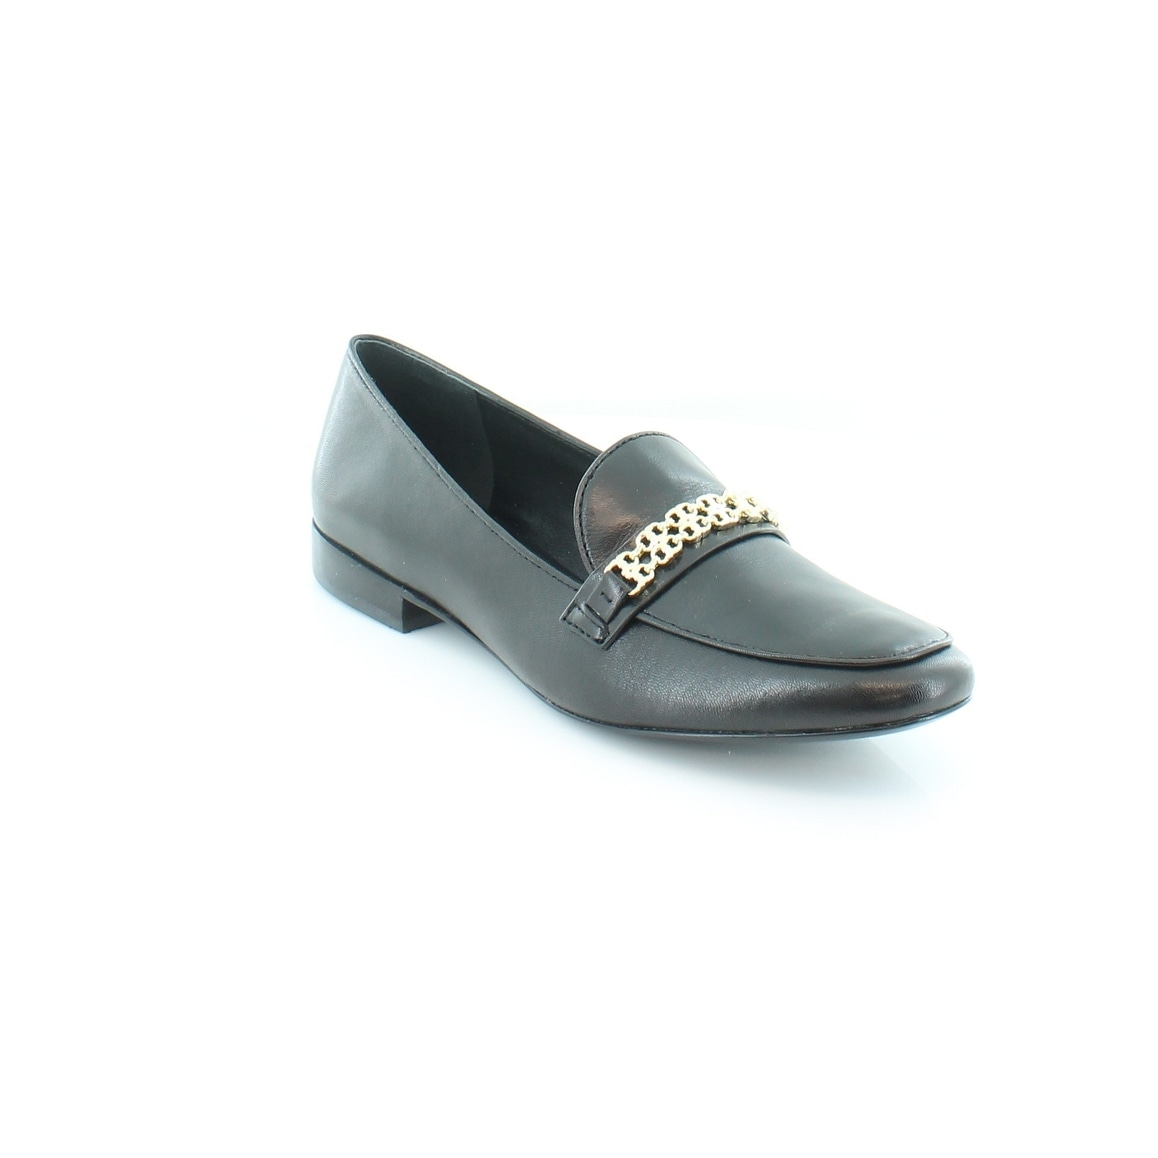 9594f862447d13 Tory Burch Gemini Link Loafer Women s Flats   Oxfords Black - Free Shipping  Today - Overstock.com - 27281521